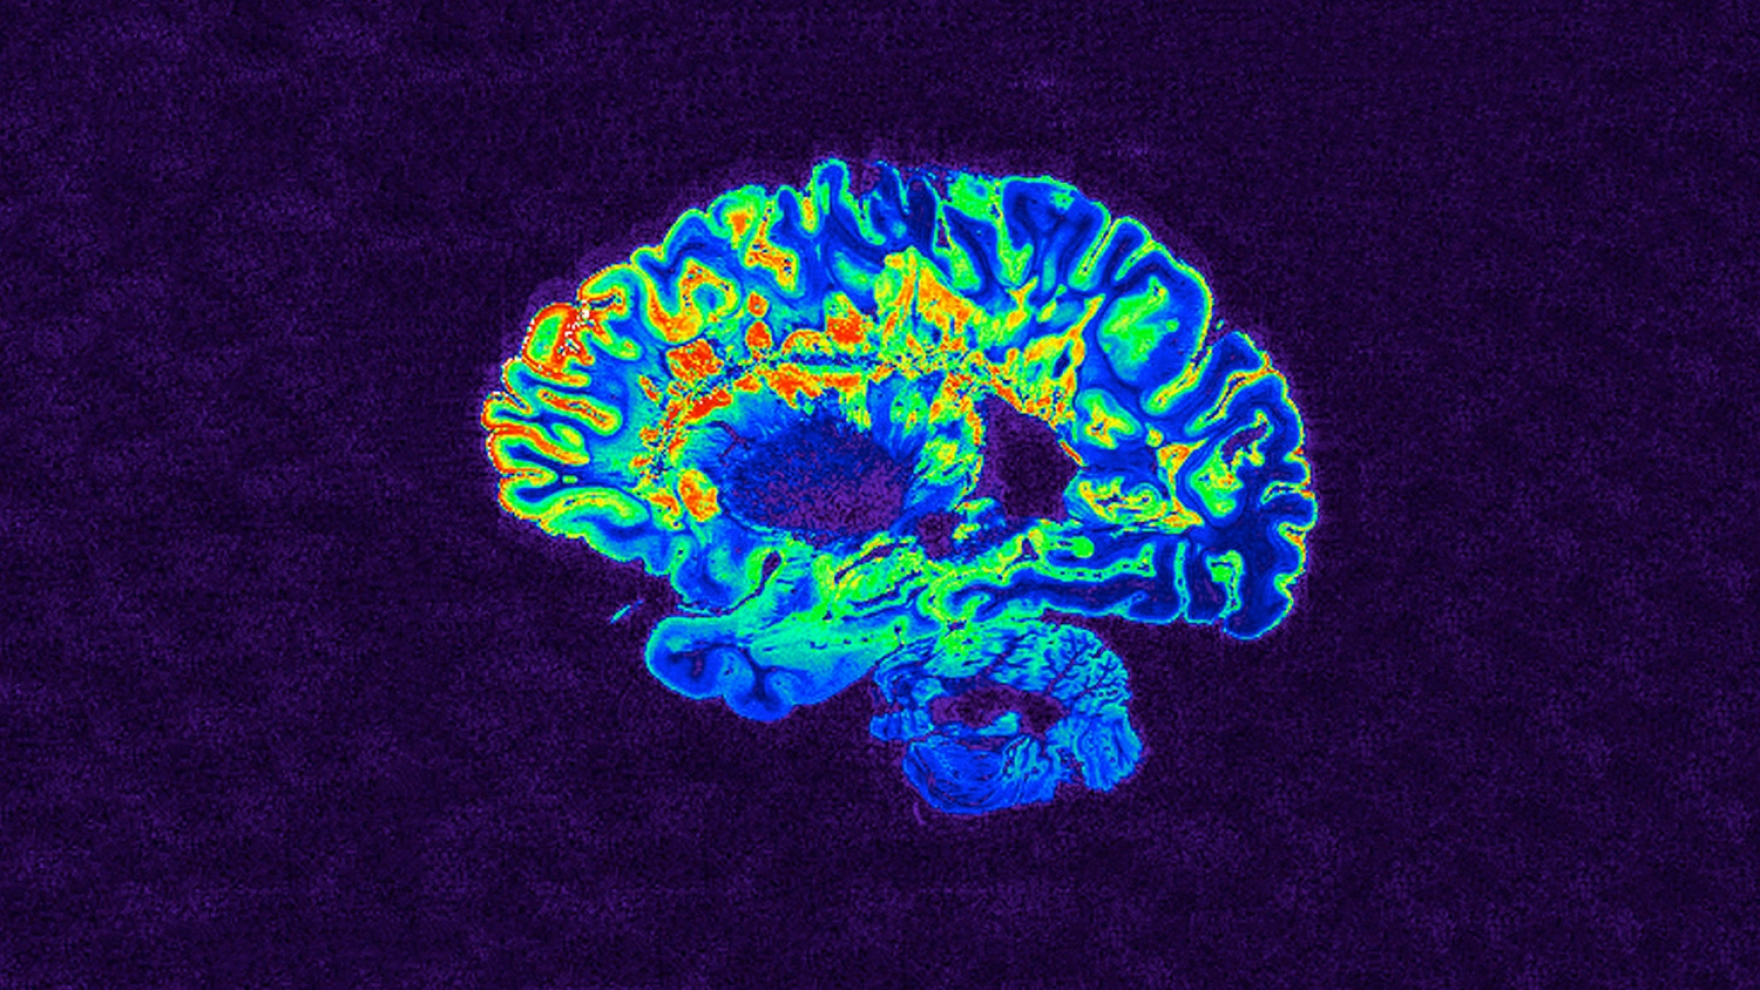 an MRI scan of the brain of a person with multiple sclerosis